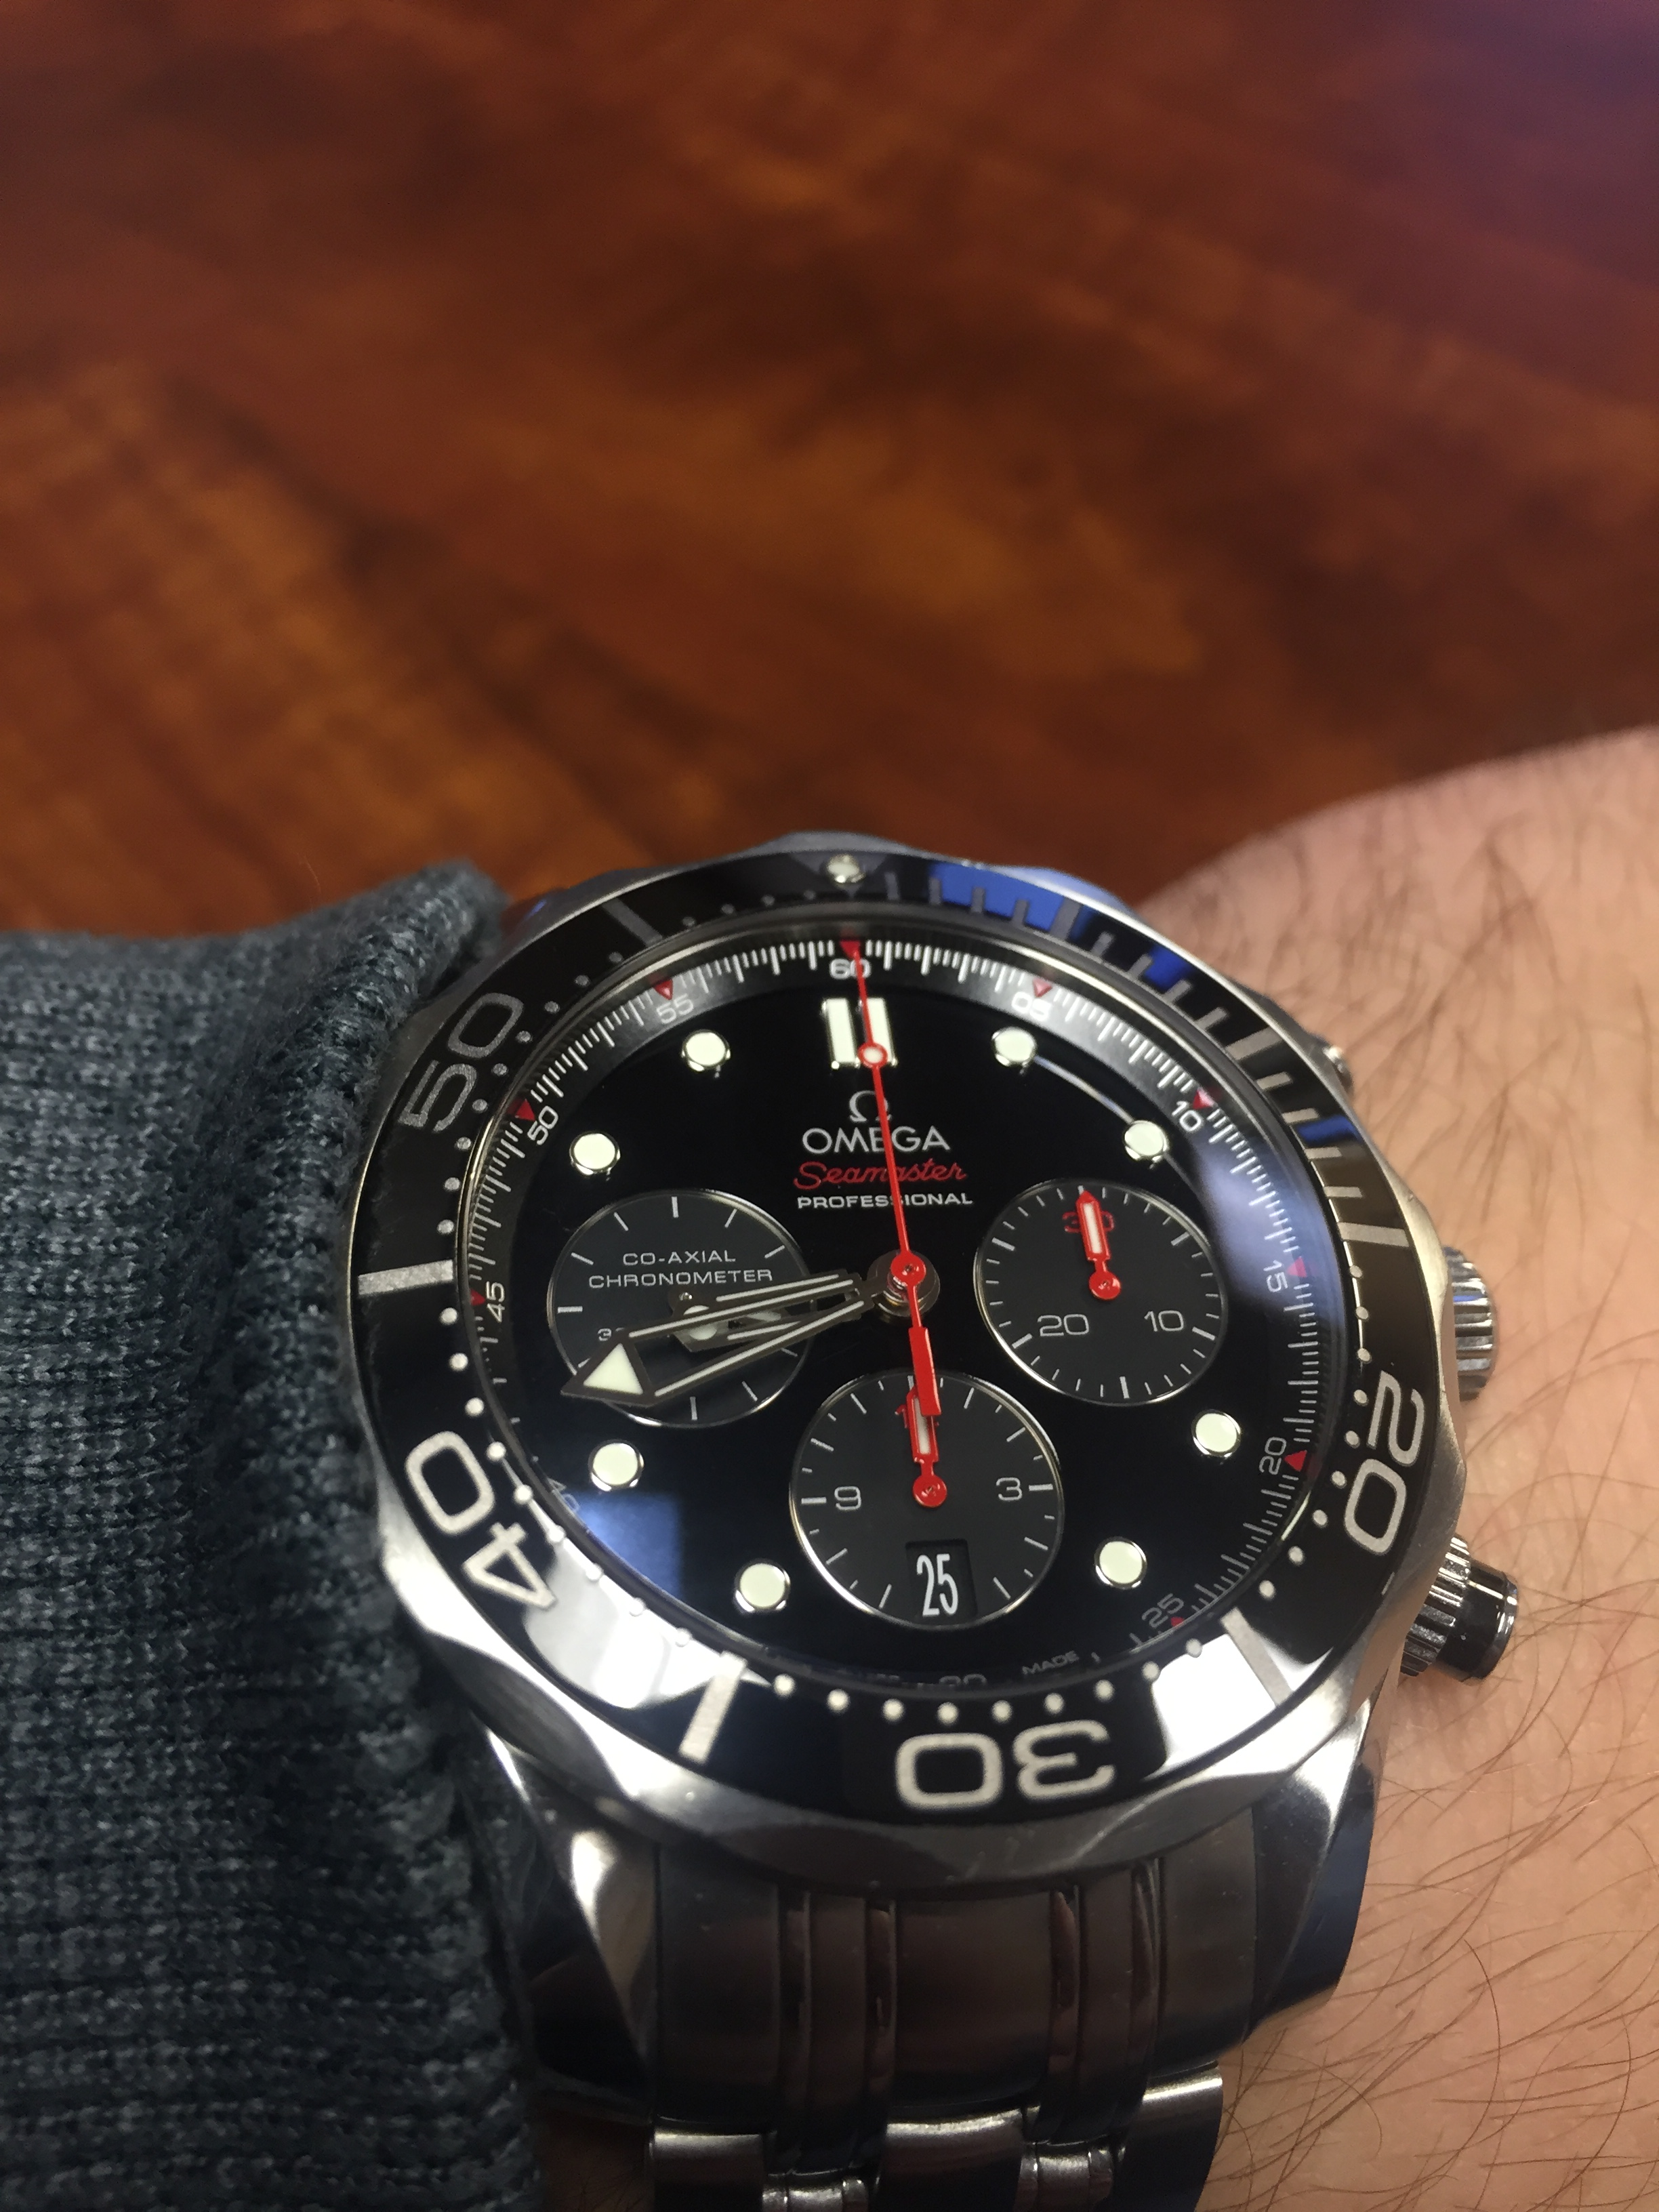 3eb6a8f187e0 The ceramic bezel makes a huge difference